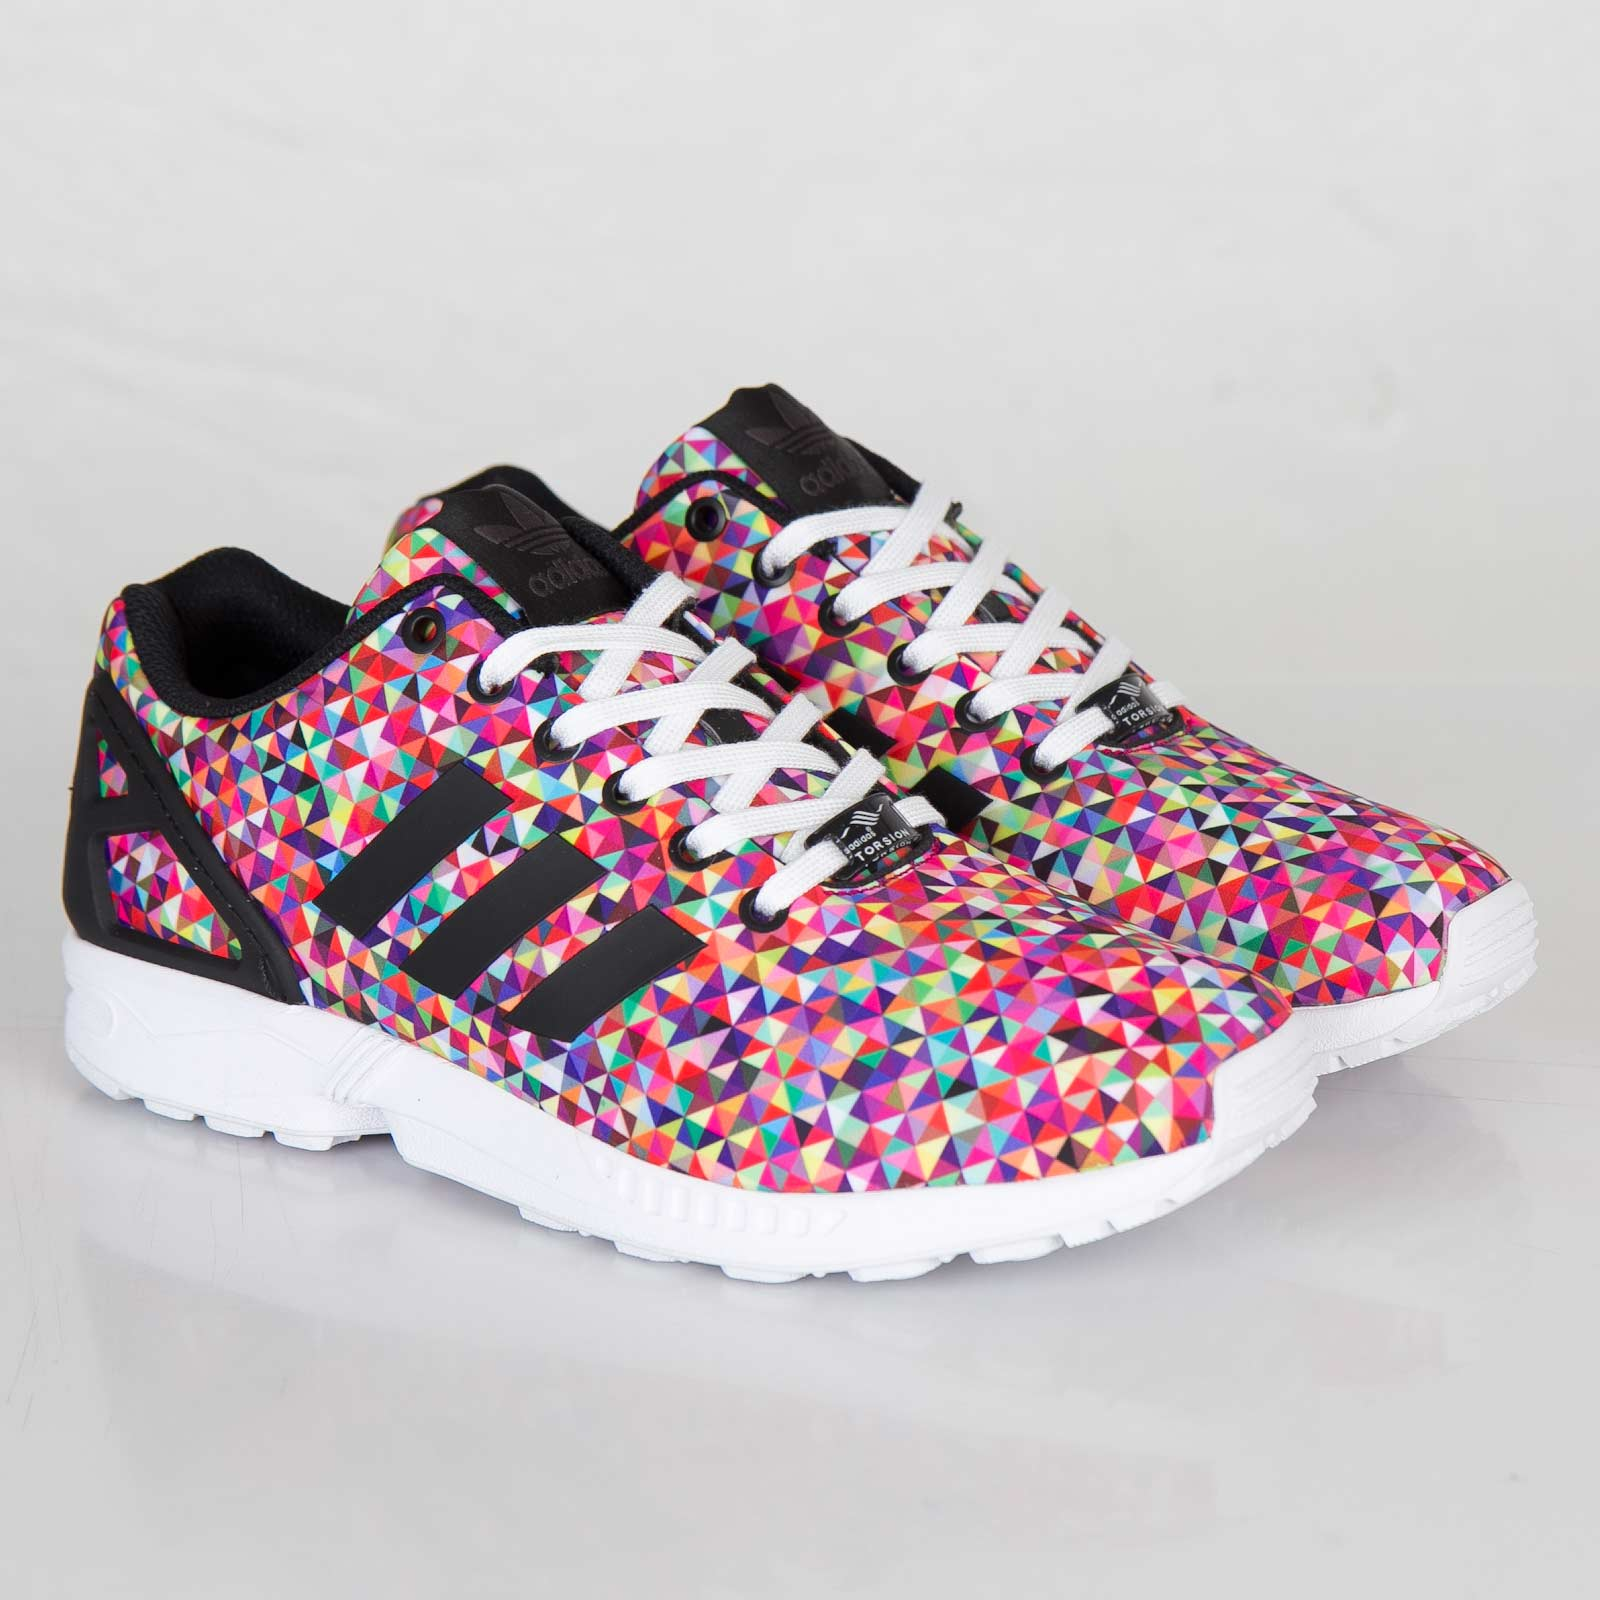 design intemporel 7035e f1f98 adidas ZX Flux - M19845 - Sneakersnstuff | sneakers ...